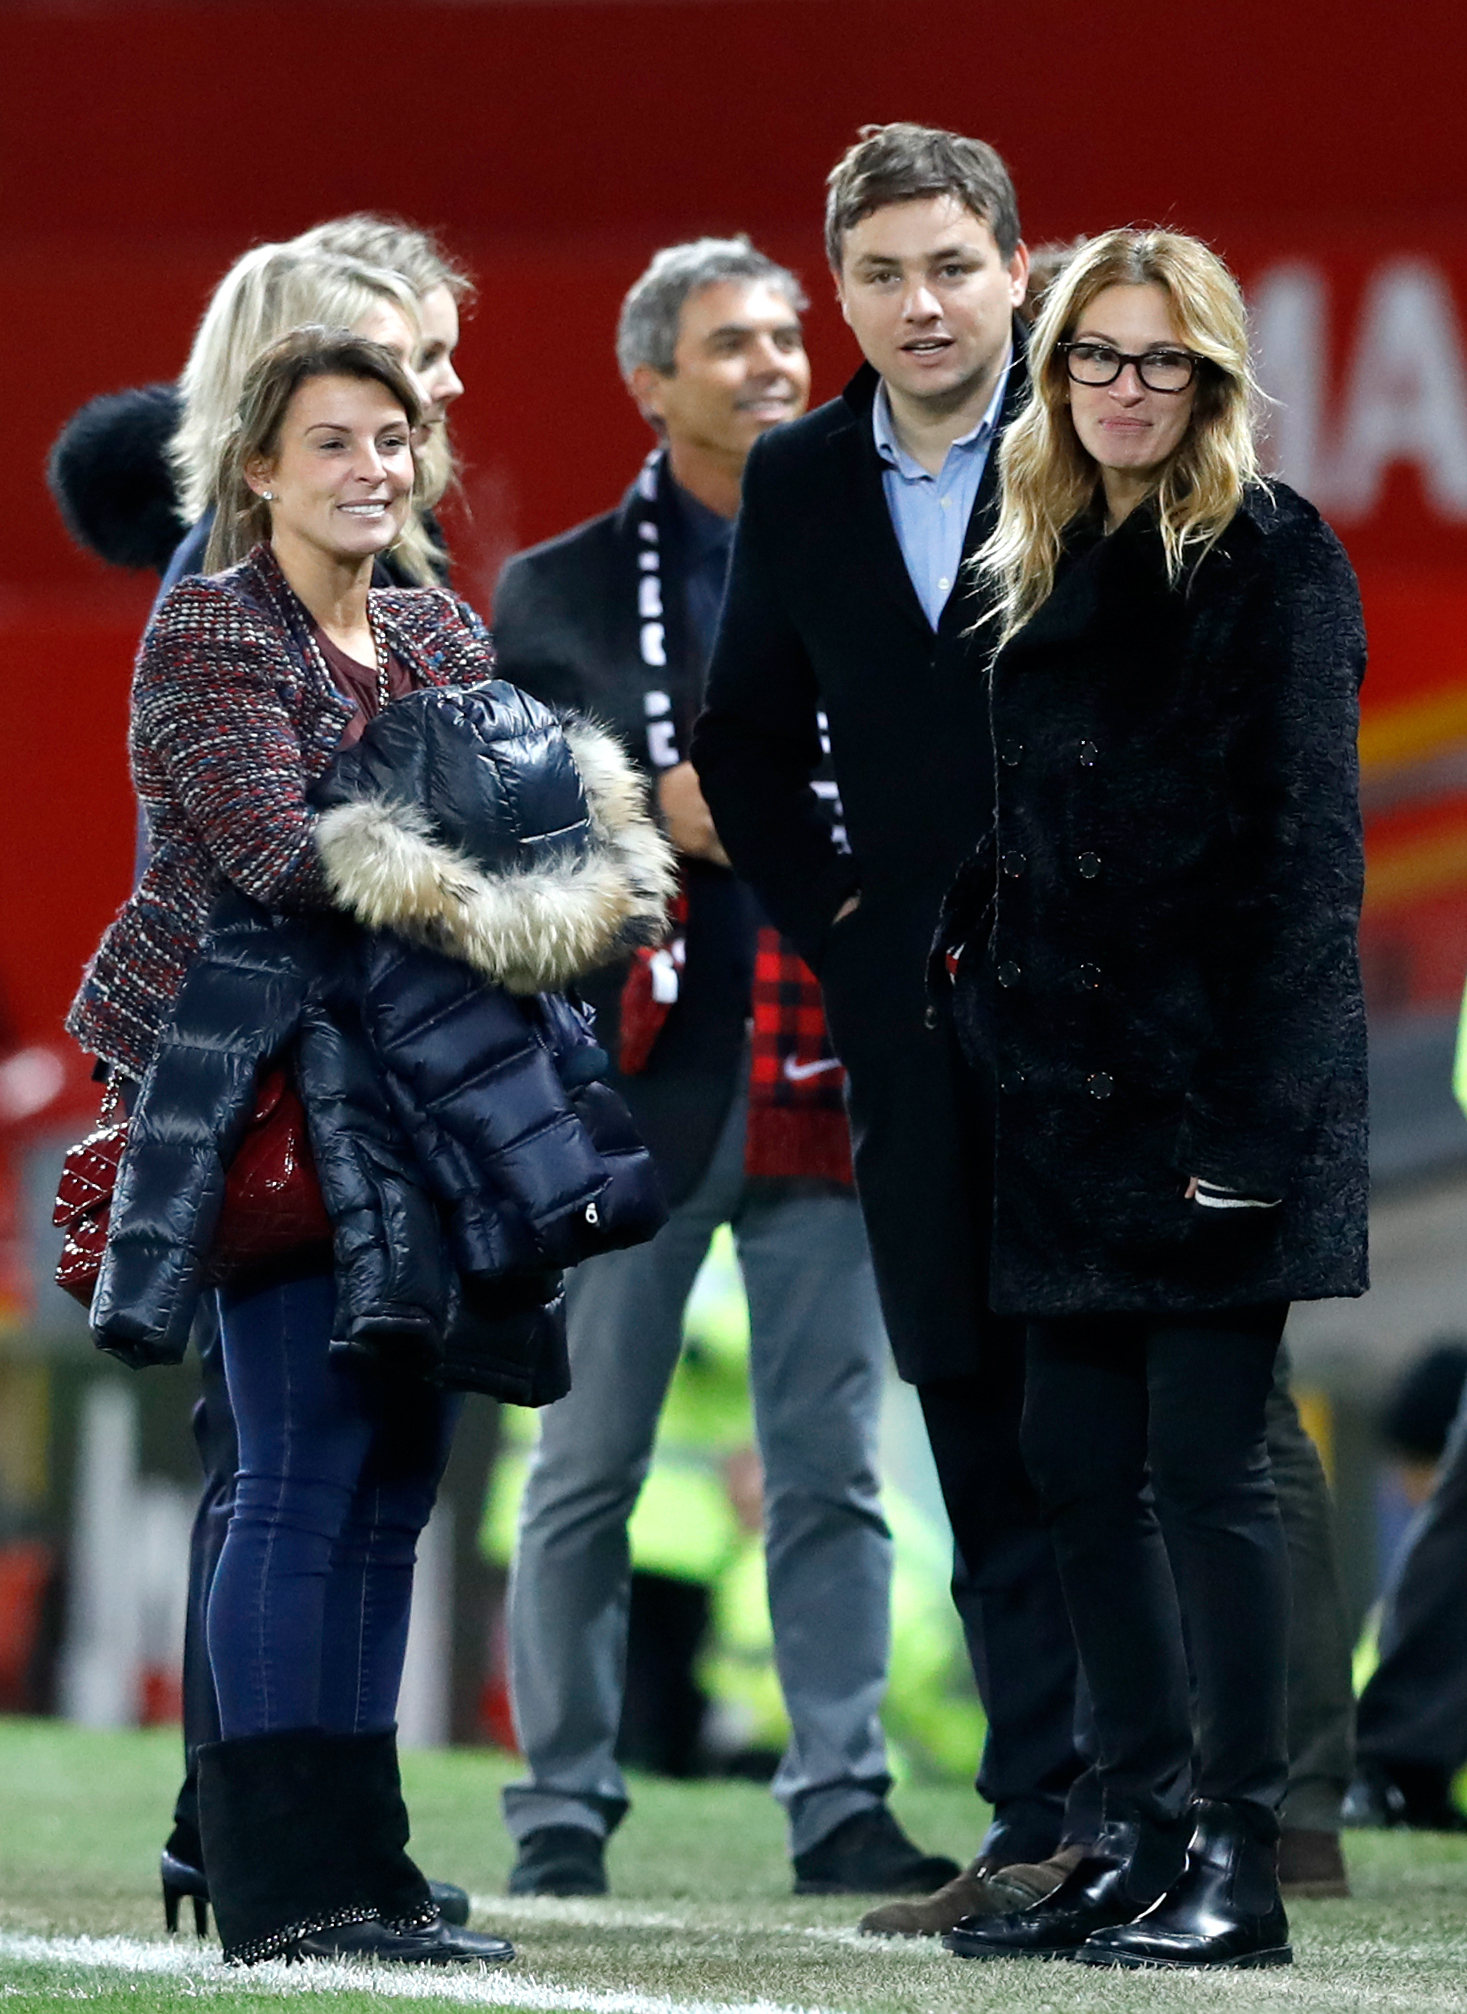 Julia Roberts and Coleen Rooney at Old Trafford